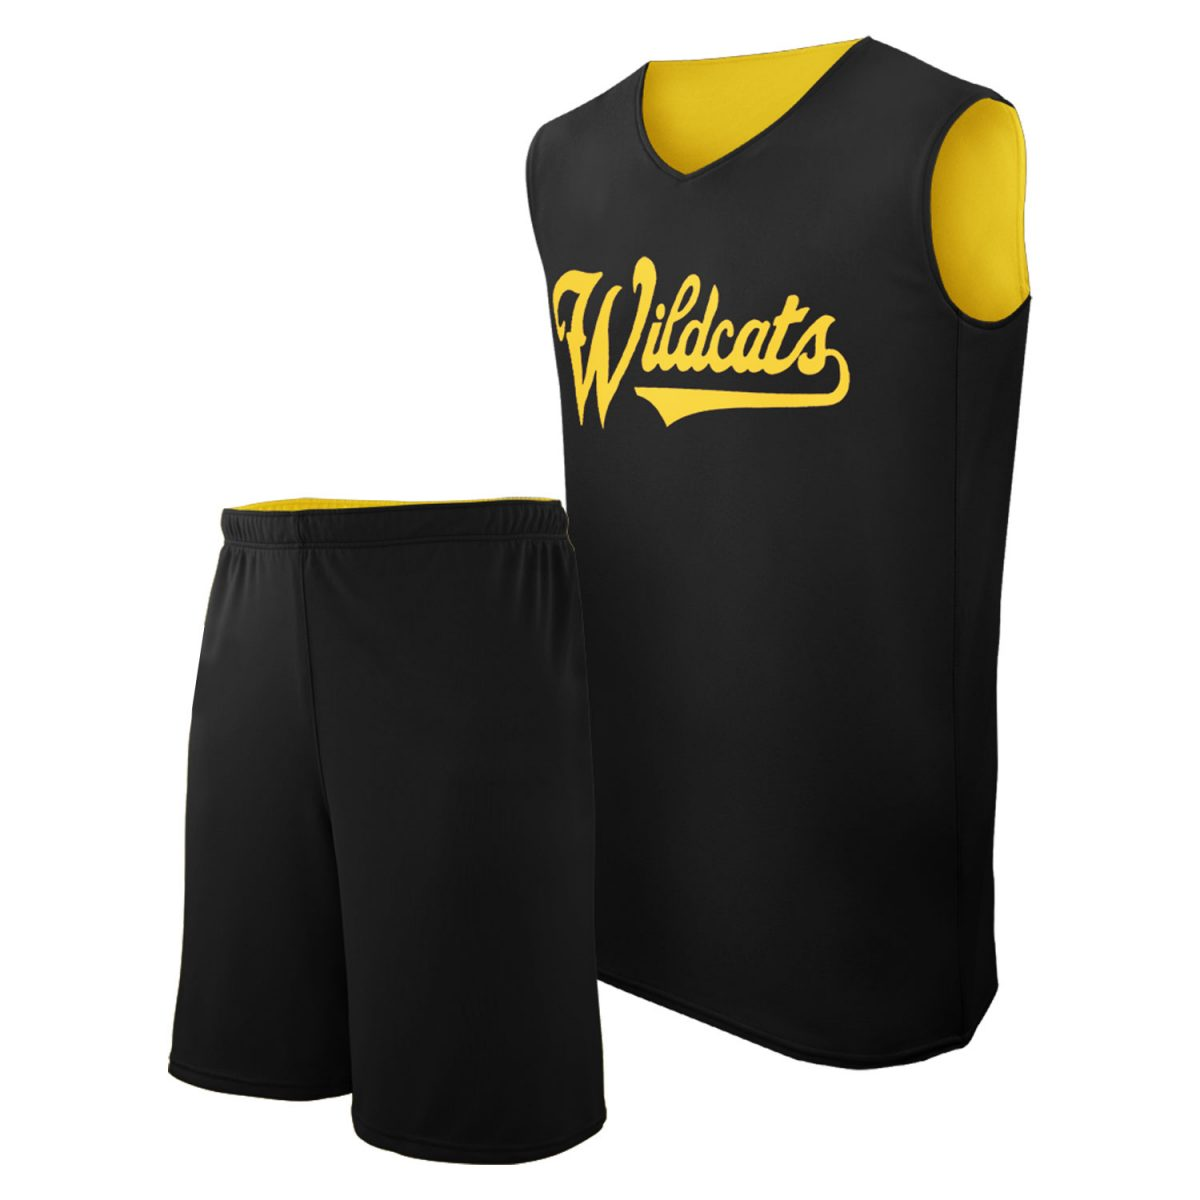 Boys Basketball Uniforms Manufacturers in Jalandhar in Belarus